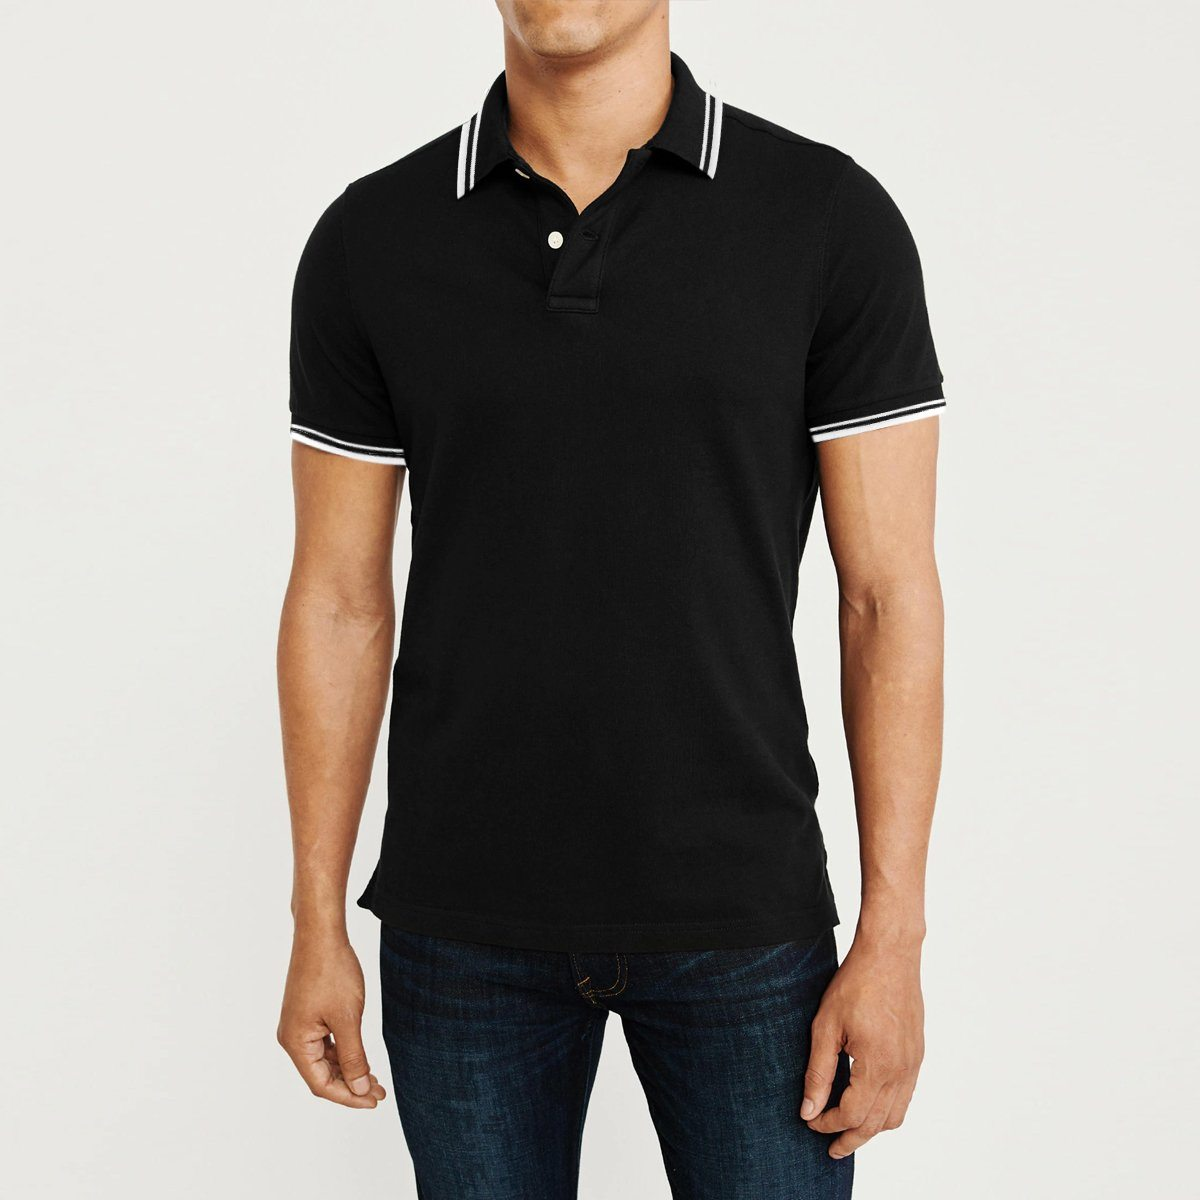 Loops black 'regular fit' tipped collar polo (1719)